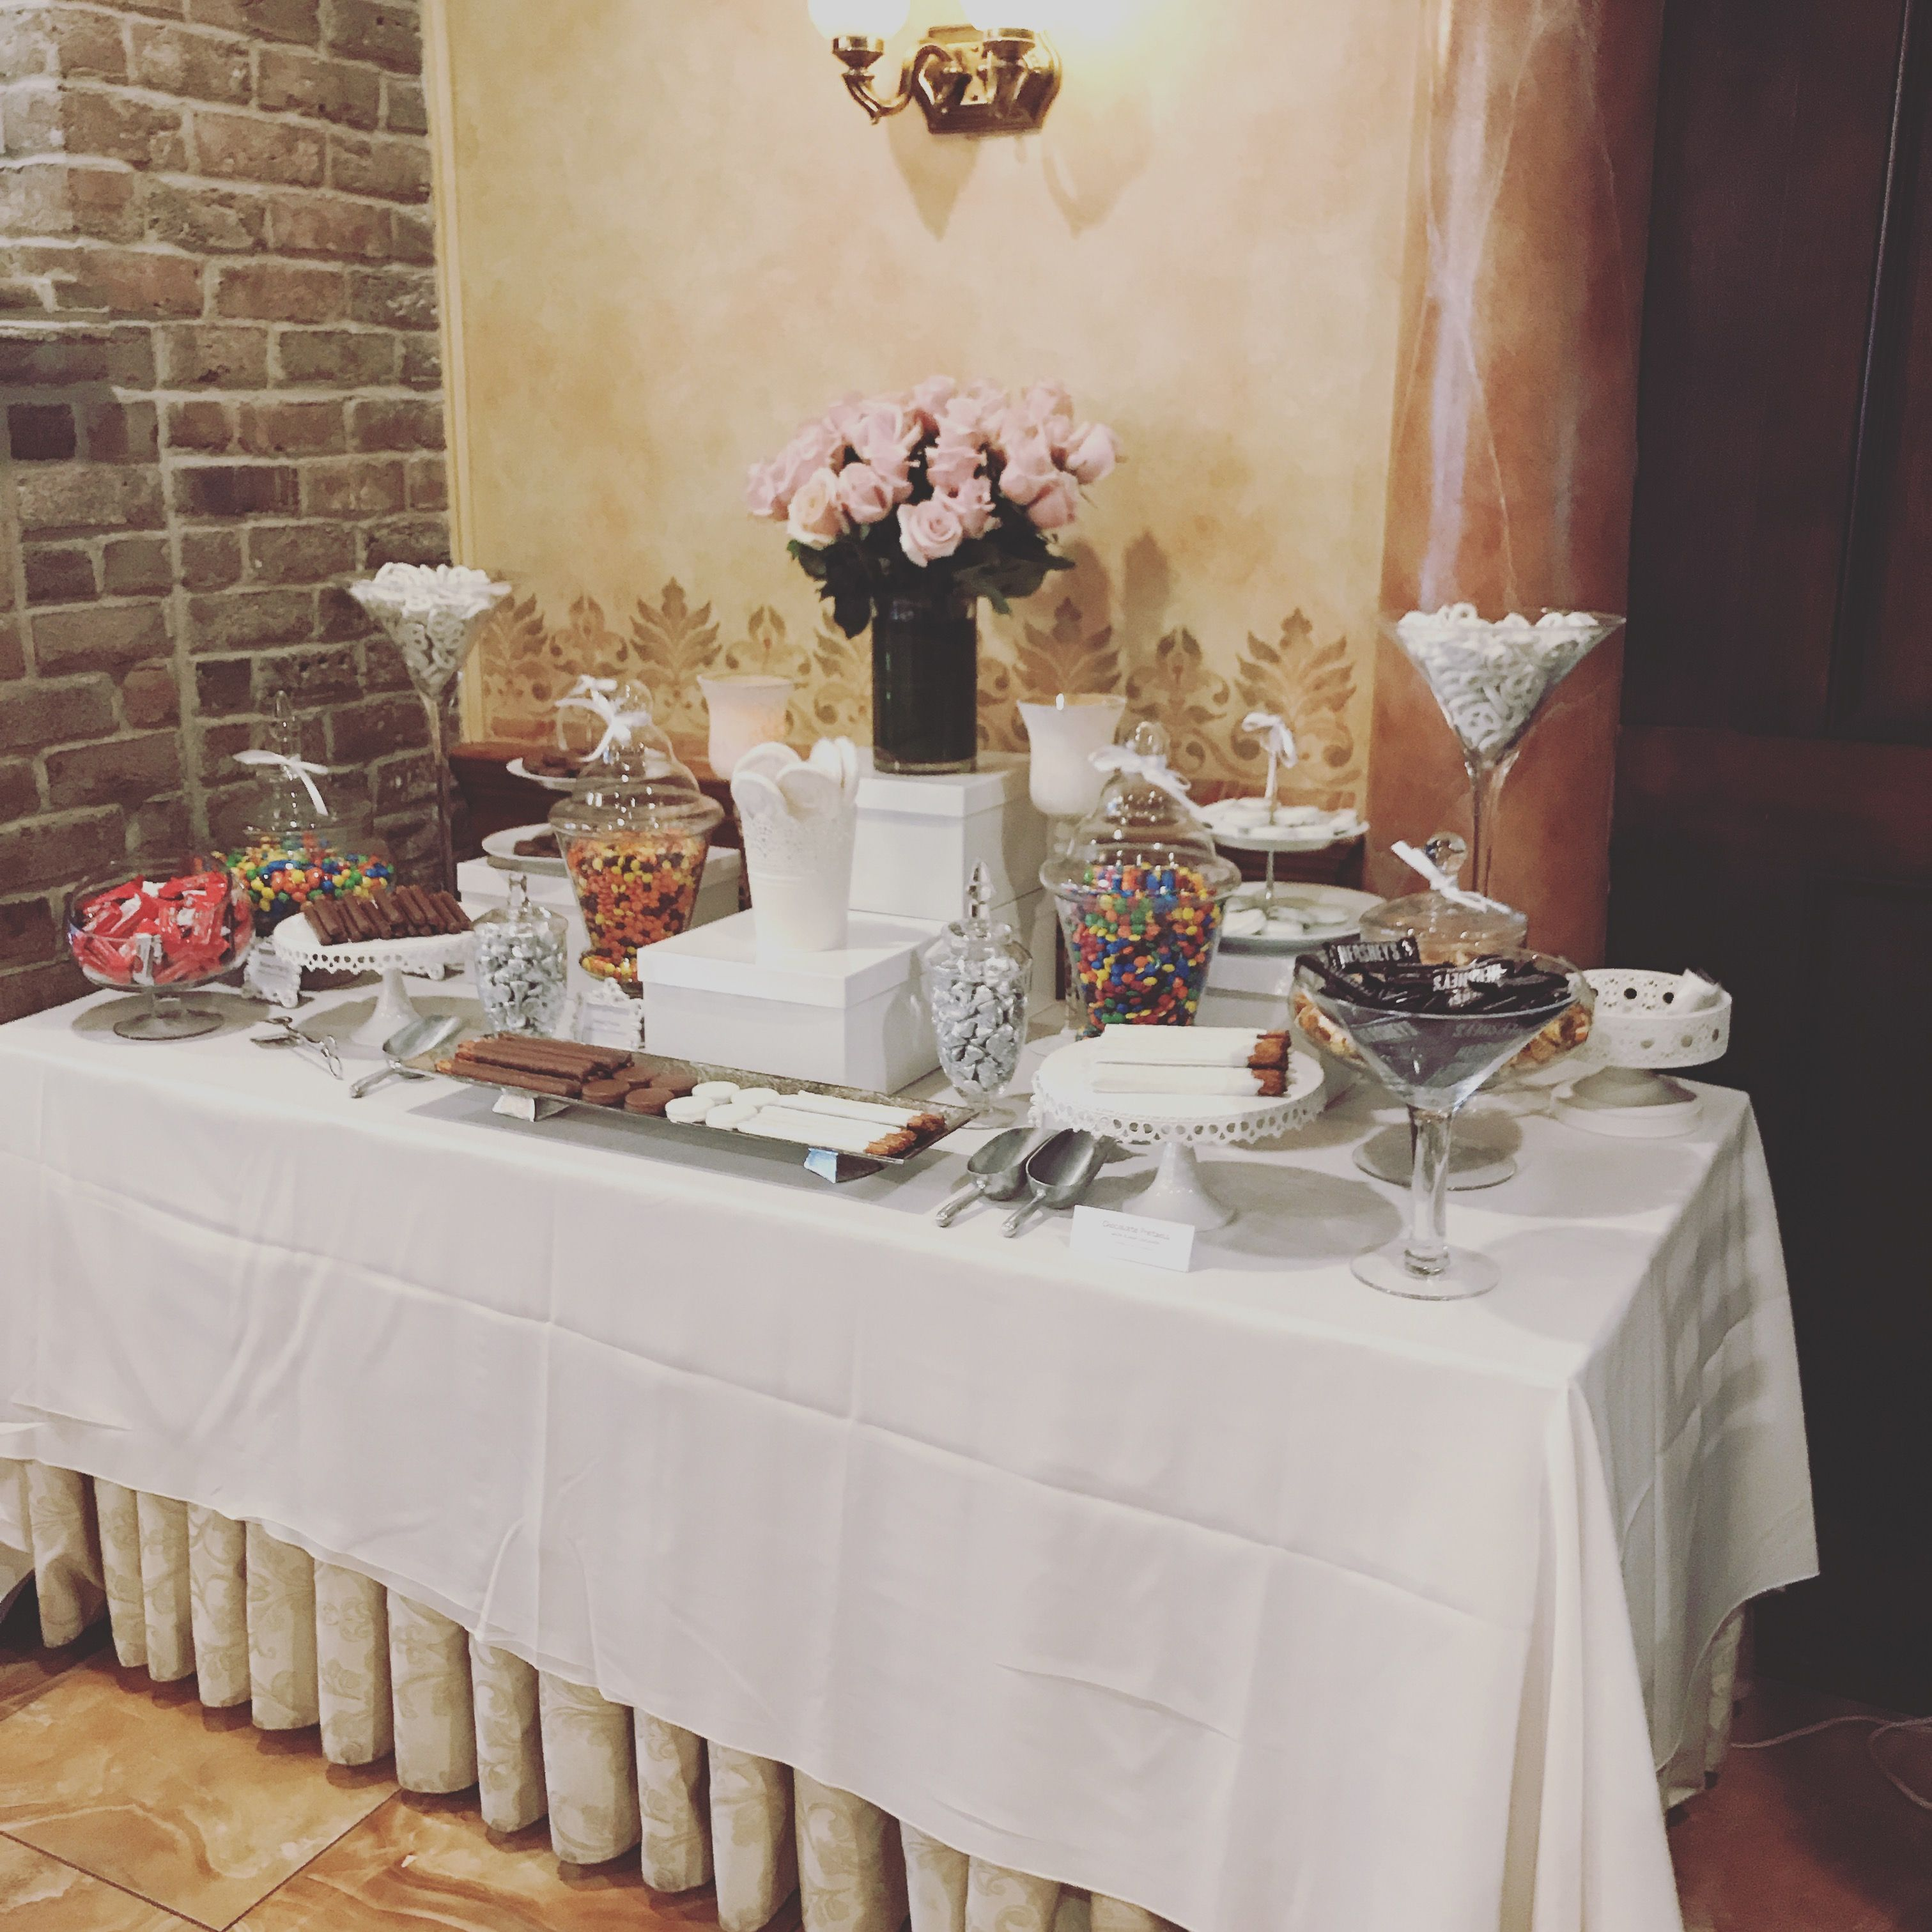 Superb New Candy Table For A Bridal Shower We Made At Ravellos In Download Free Architecture Designs Jebrpmadebymaigaardcom